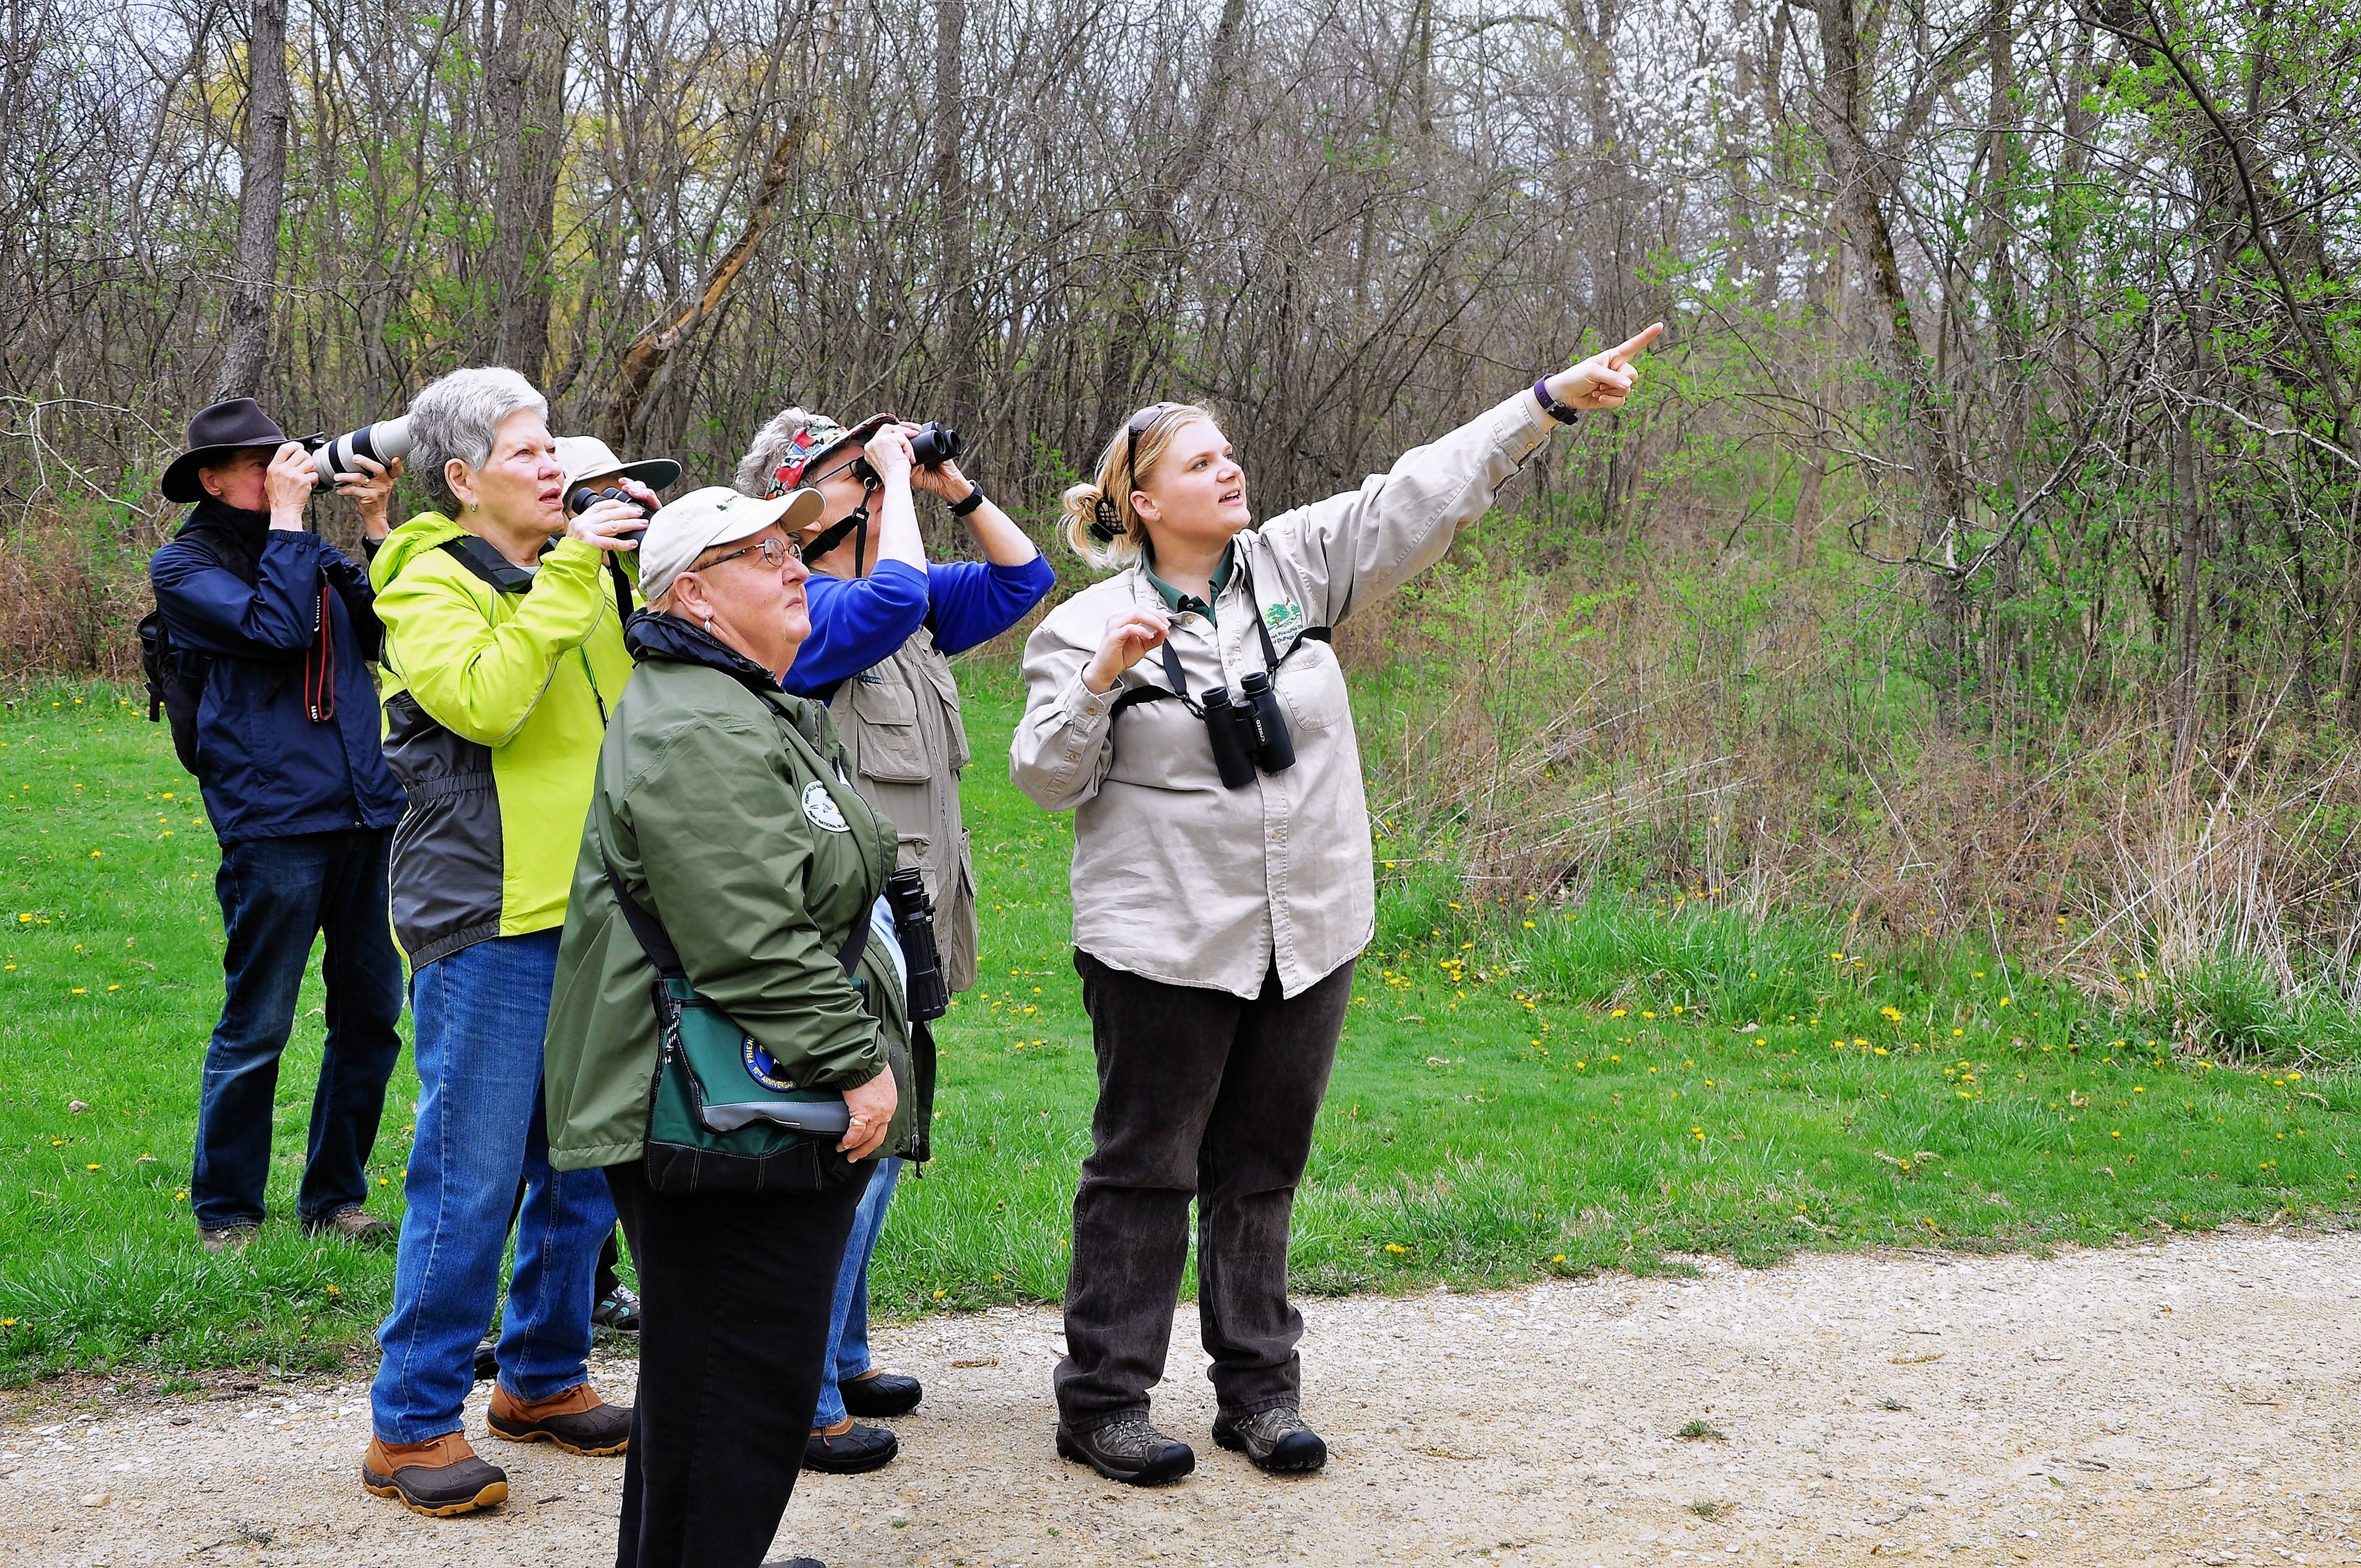 Naturalist Keriann Dubina leads the FullersBird Friday walks, a seasonal bird-watching program of the Forest Preserve District of DuPage County.